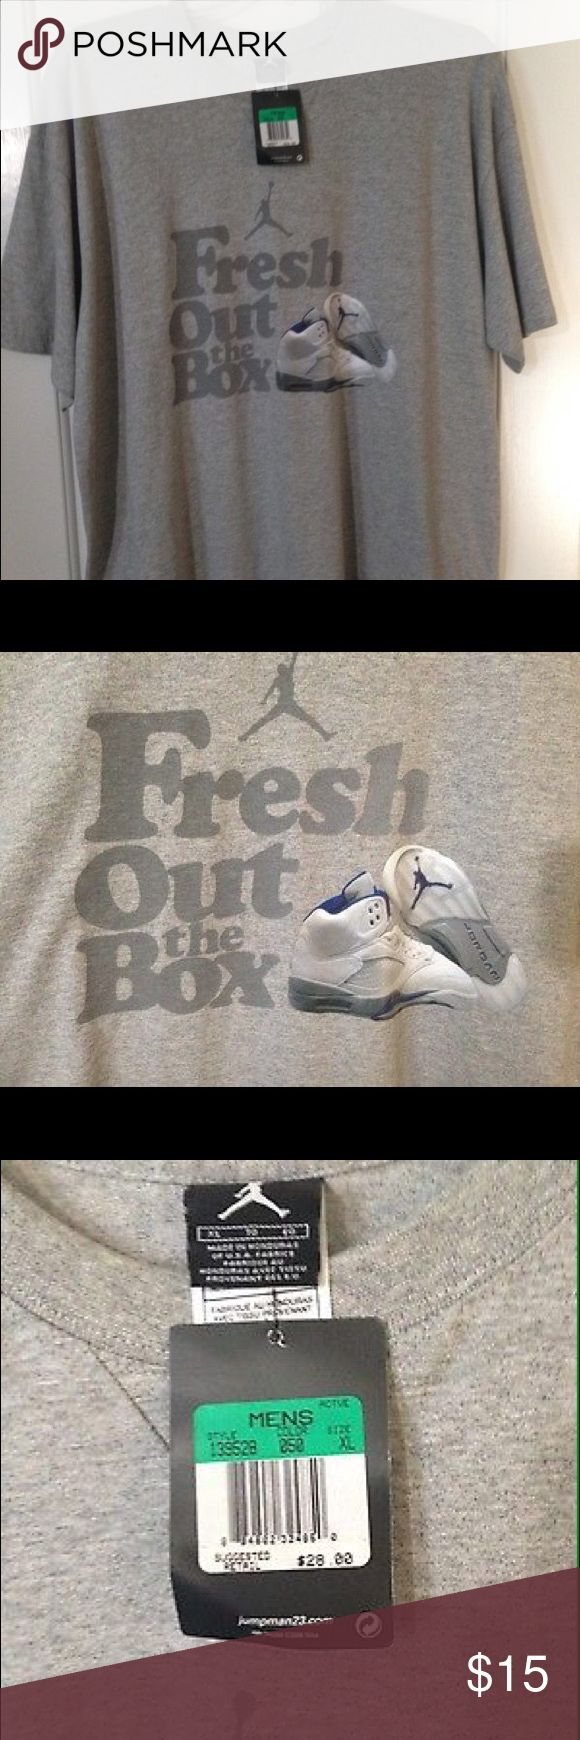 """Nike Air Jordan Retro 5 Gray T-Shirt US XL Hello All, Today I am selling a Nike Air Jordan 5 Retro """"Fresh Out The Box"""" T-Shirt. This shirt is gray with the words """"Fresh Out the Box"""" and image of the Jumpman Logo/Air Jordan 5 Stealth. It has never been worn and is brand new with tags. Thank you for checking out my listing! Jordan Shirts Tees - Short Sleeve"""